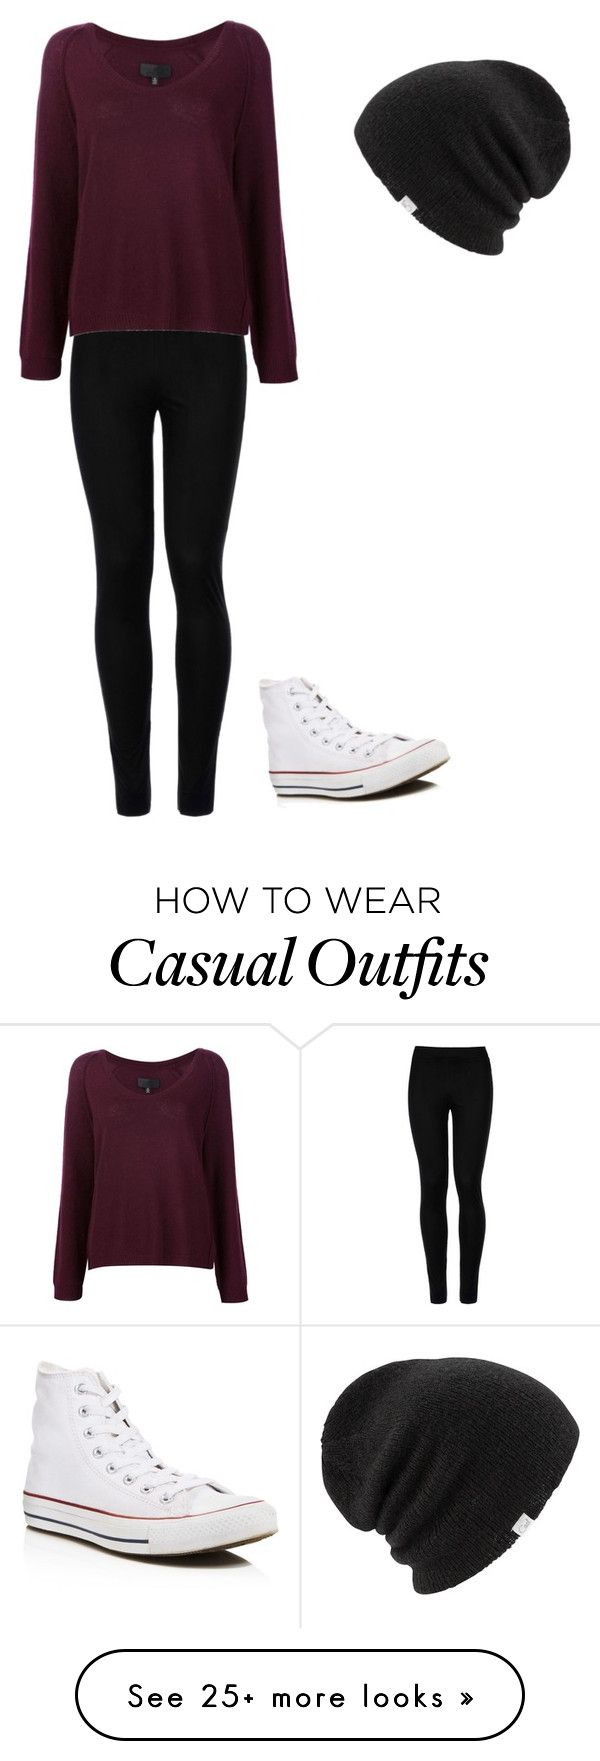 """Casual"" by jadenblanche02 on Polyvore featuring Wolford, Nili Lotan, Converse and Coal"